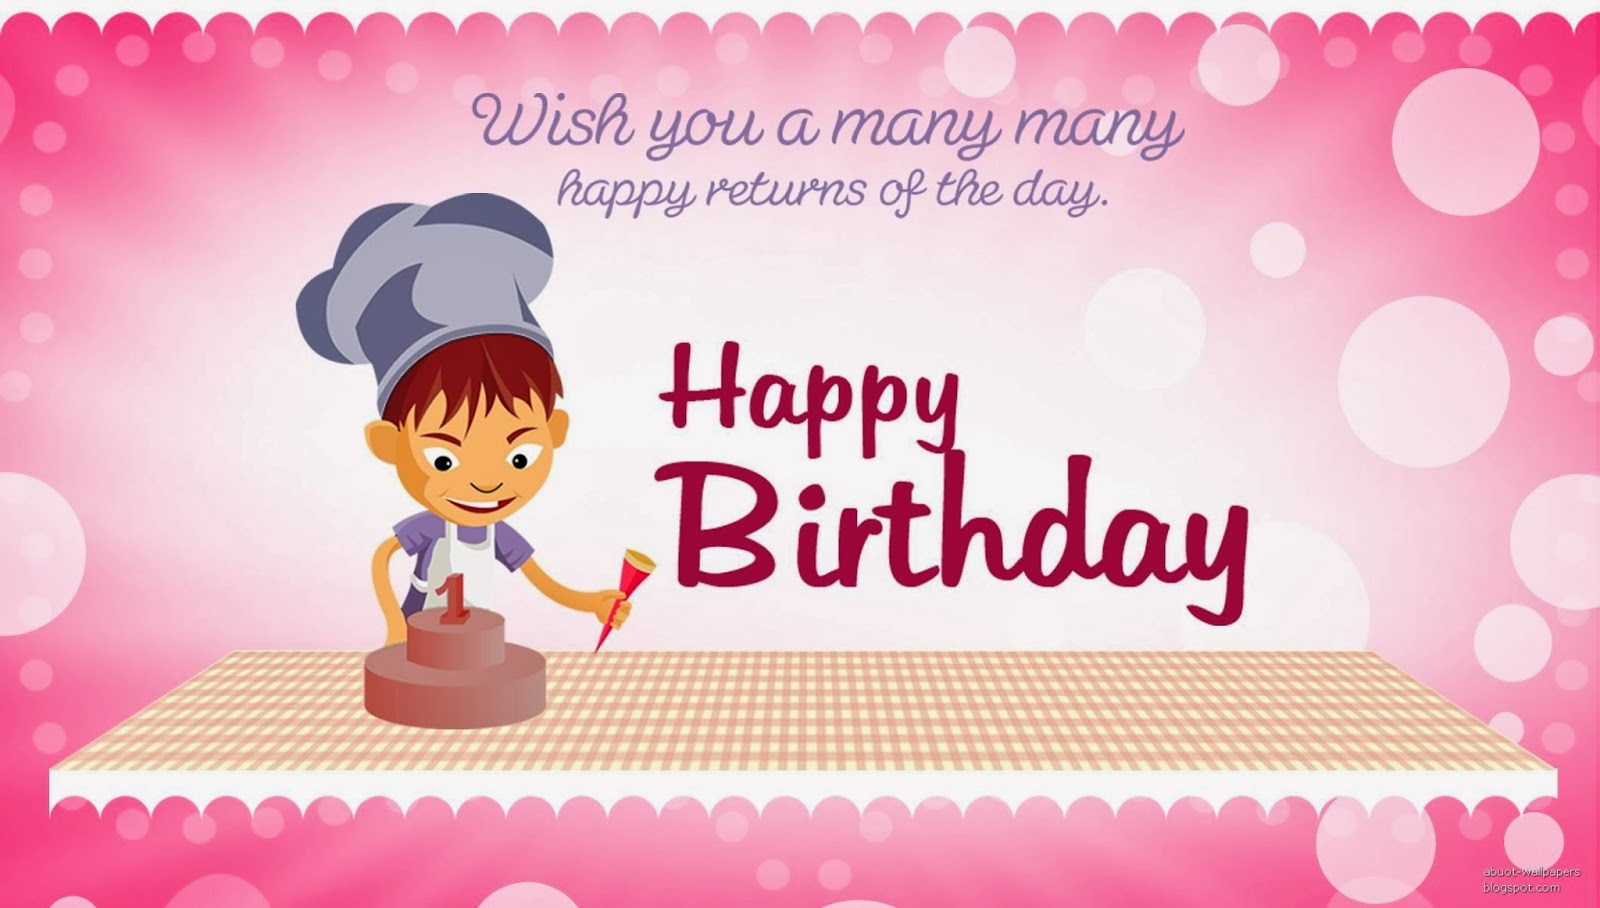 live wallpaper birthday wishes ; wish_you_very_happy_birthday_wishes_greeting_card_download